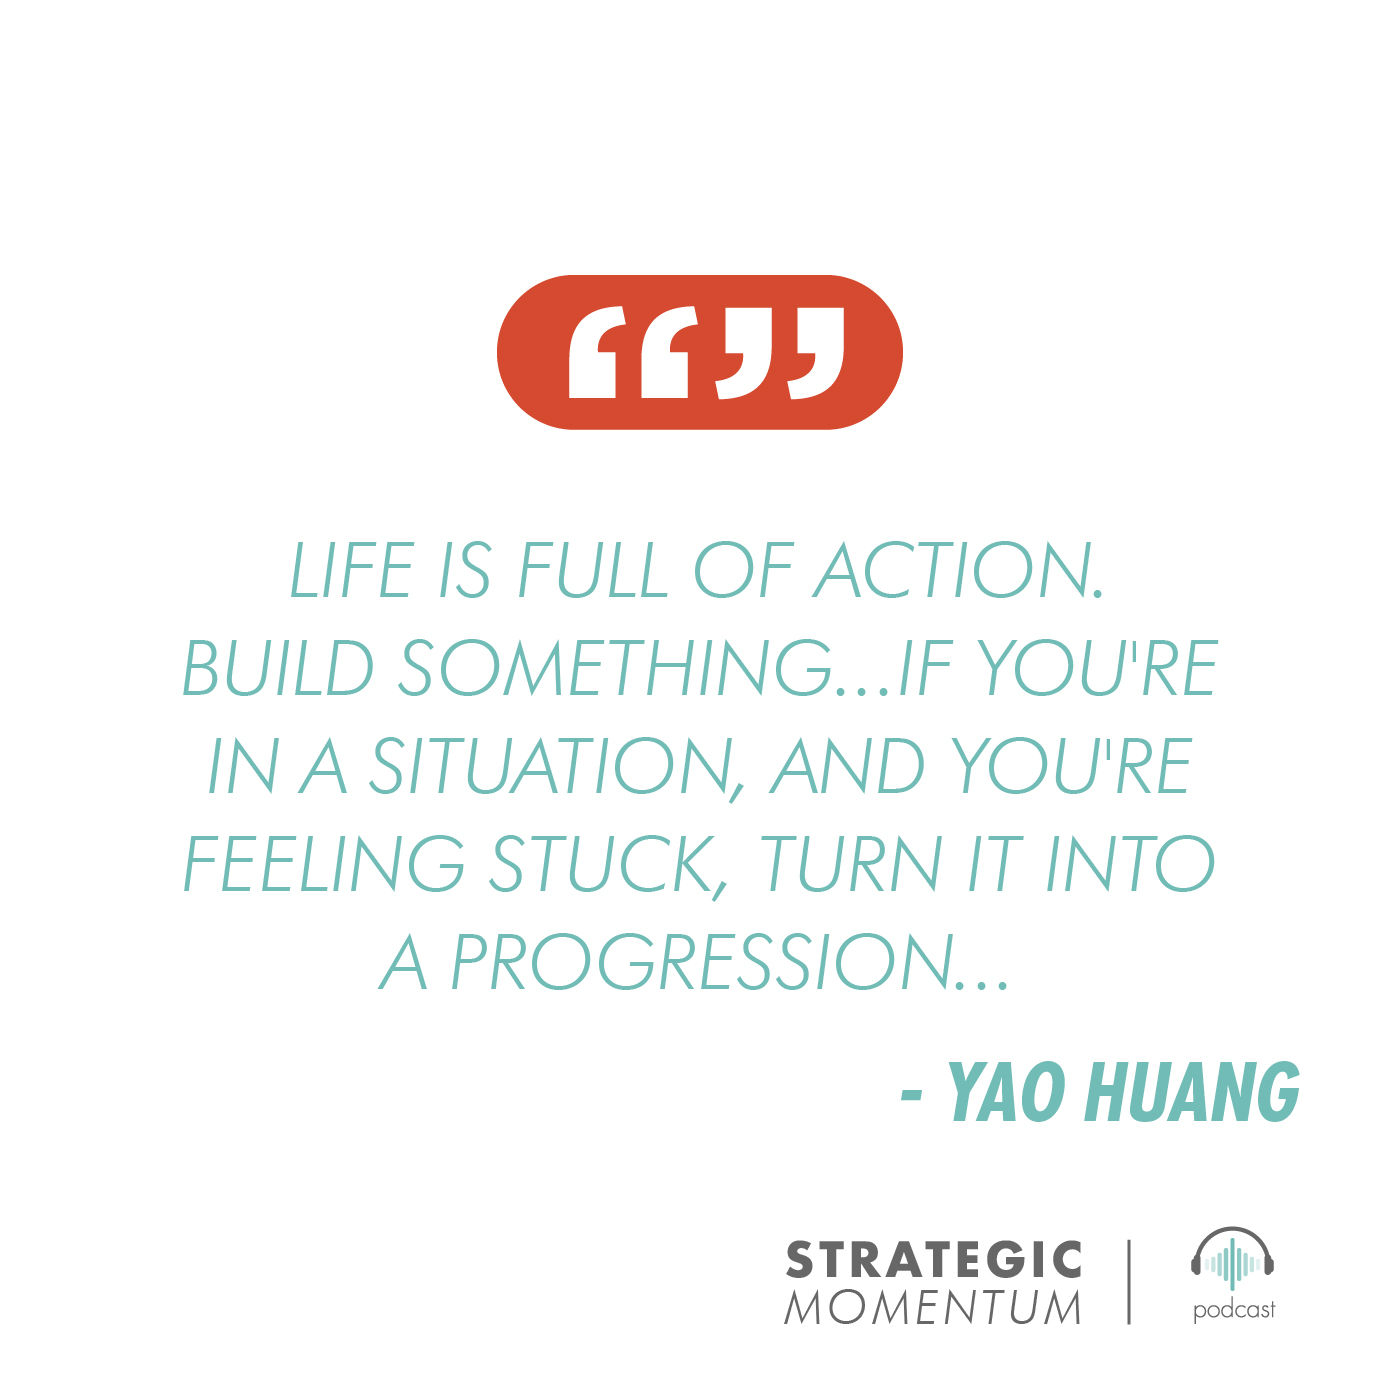 Yao Huang Quote | Strategic Momentum Podcast